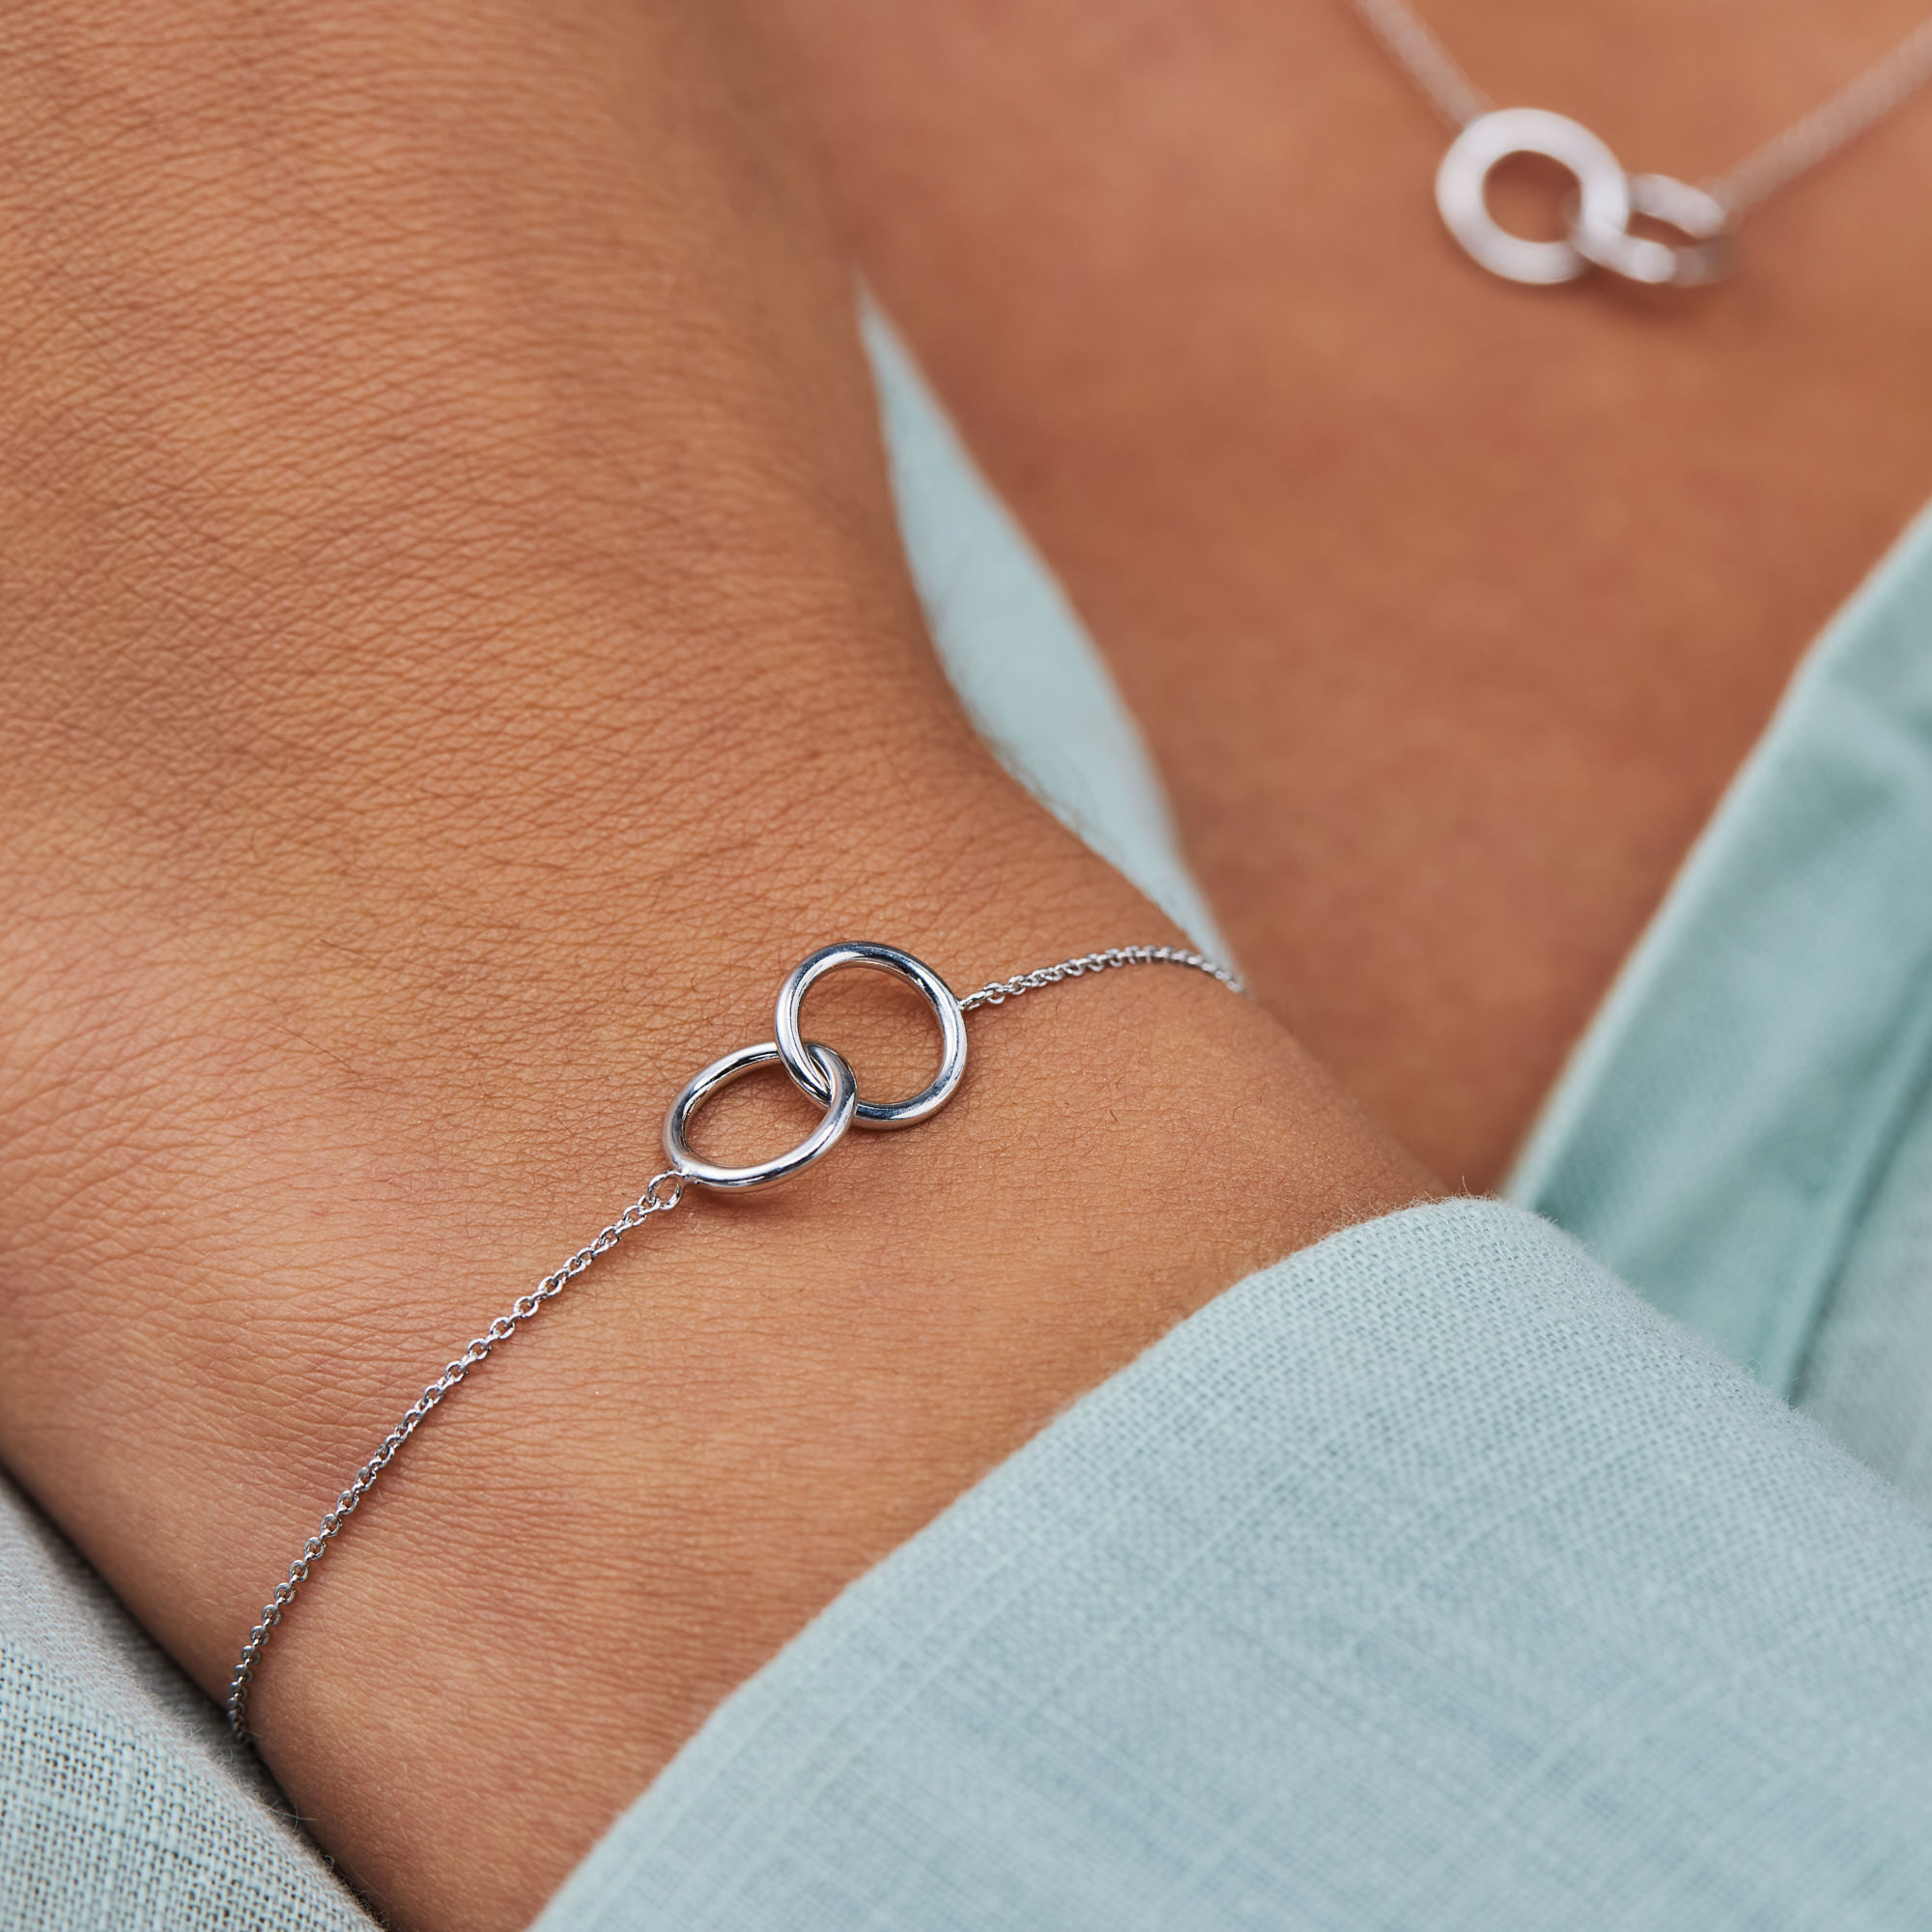 Selected Jewels Zoé 925 sterling silver bracelet with circles